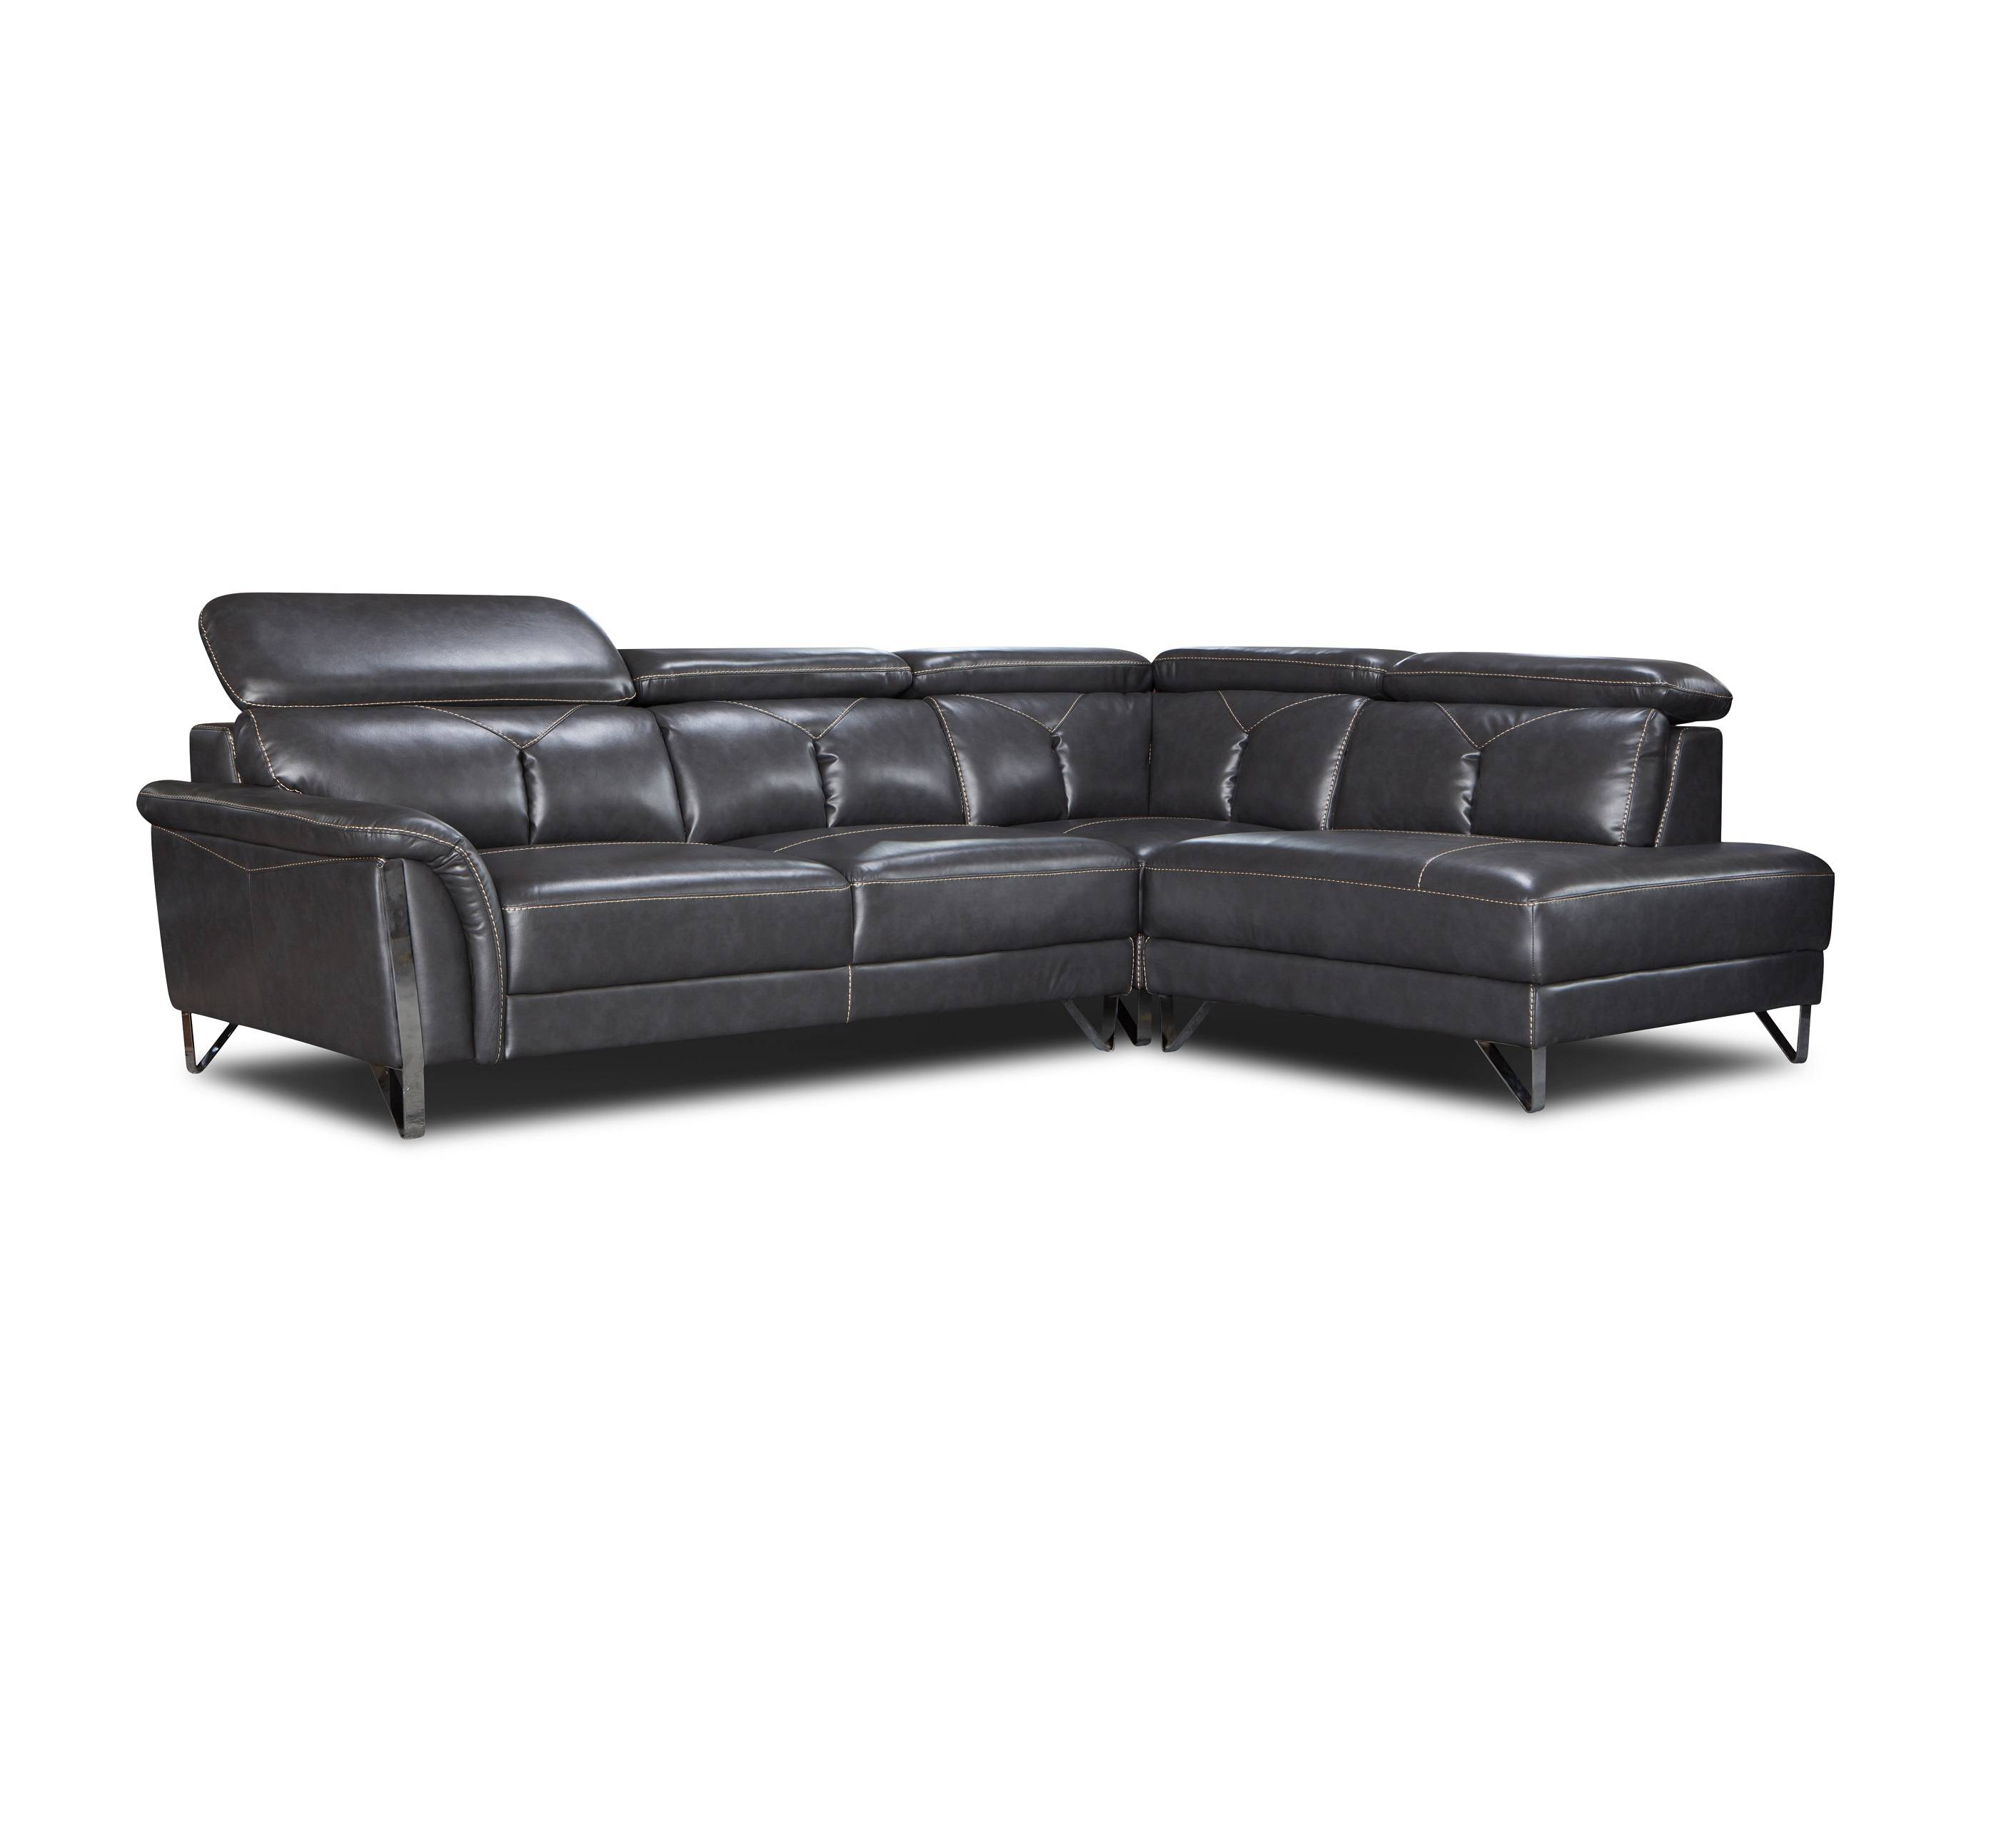 2019 latest leisure leather corner lounge sofa chaise